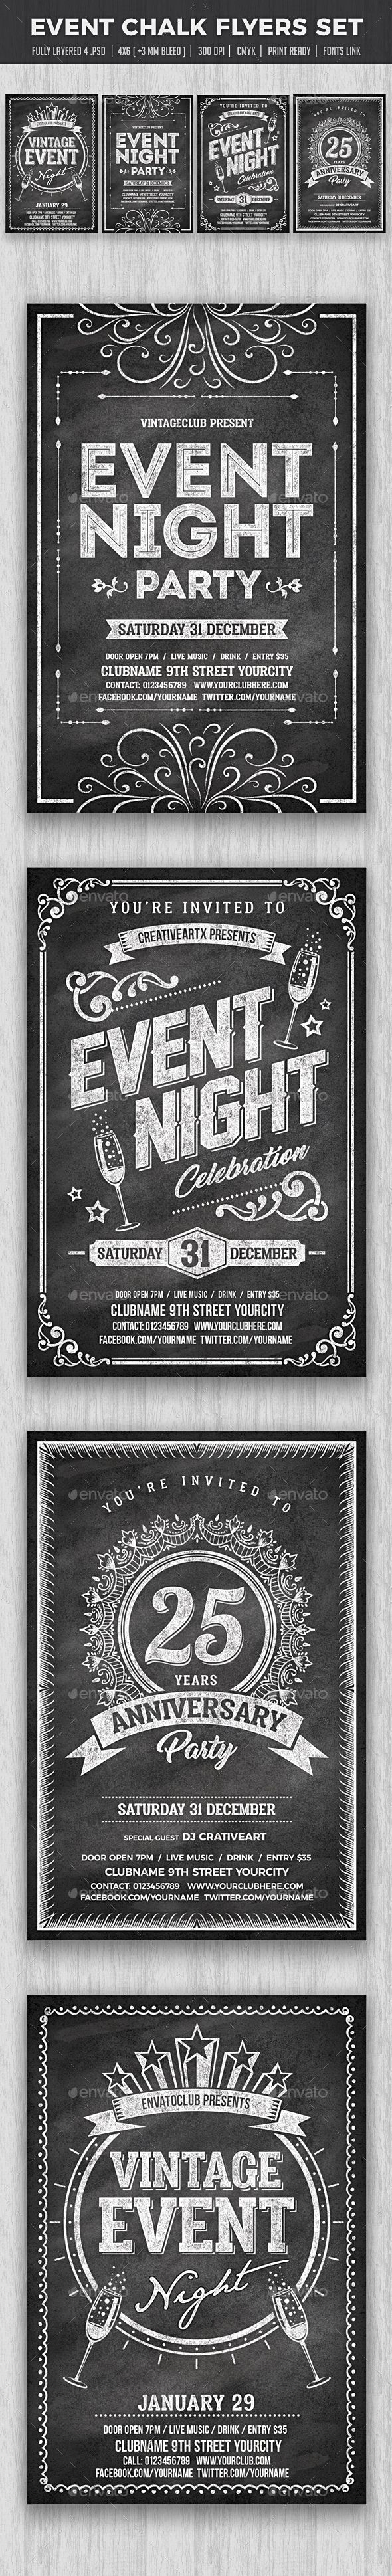 Chalk Event Flyers Set — Photoshop PSD #christmas #hipster • Download ➝ https://graphicriver.net/item/chalk-event-flyers-set/19216953?ref=pxcr